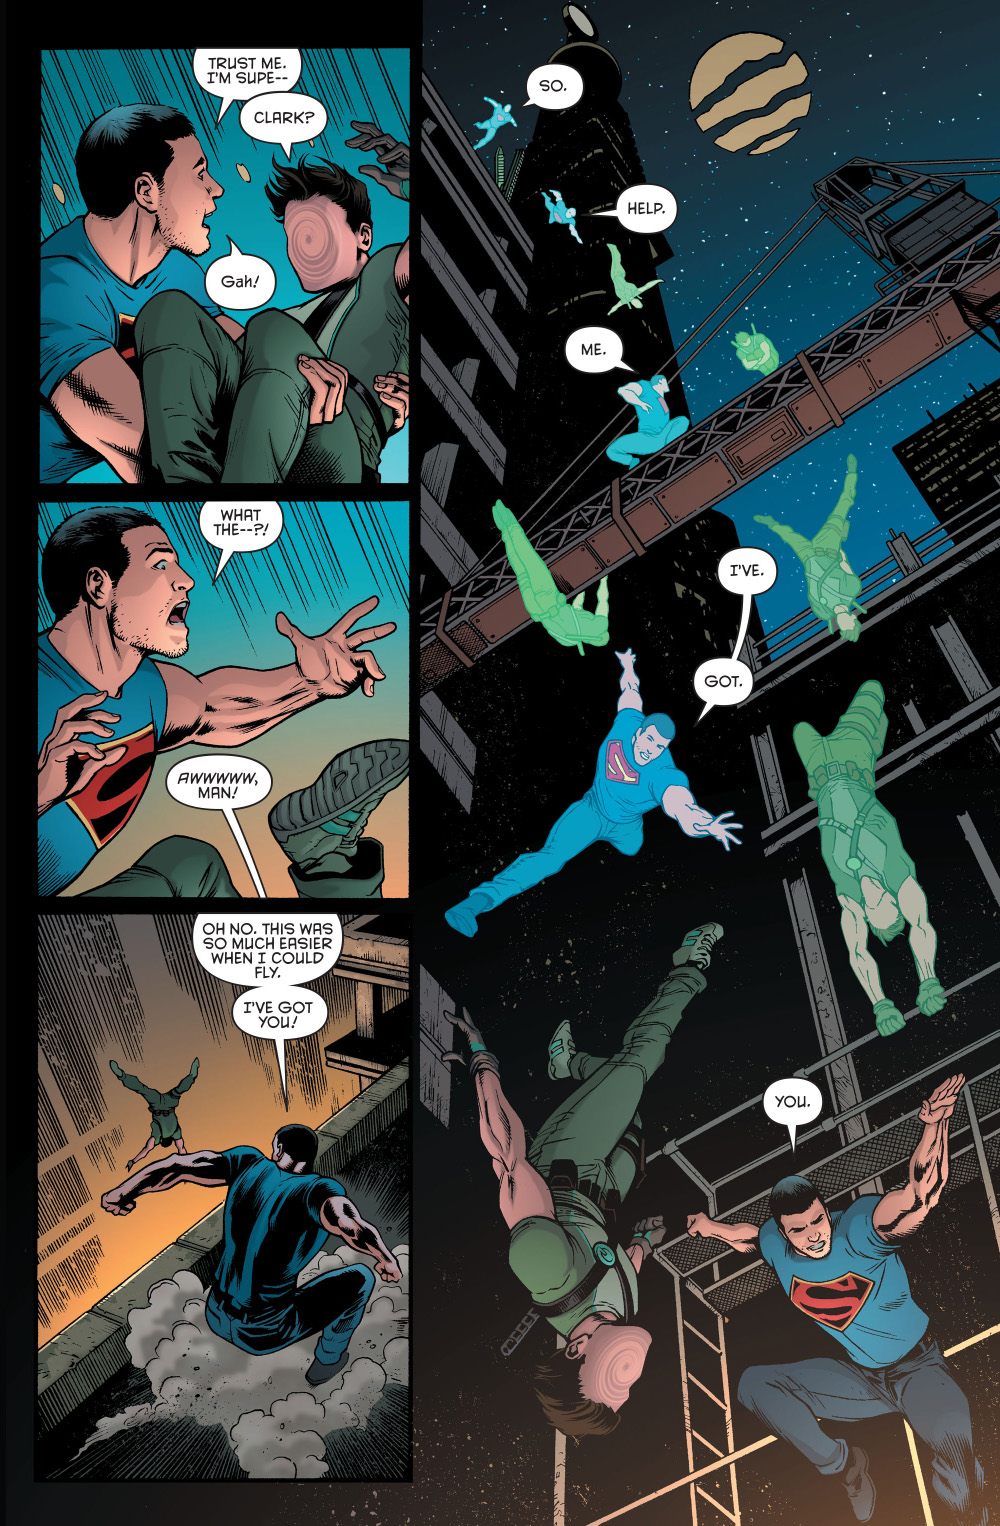 Nightwing Vs Spiderman Superman Learns Dick G...